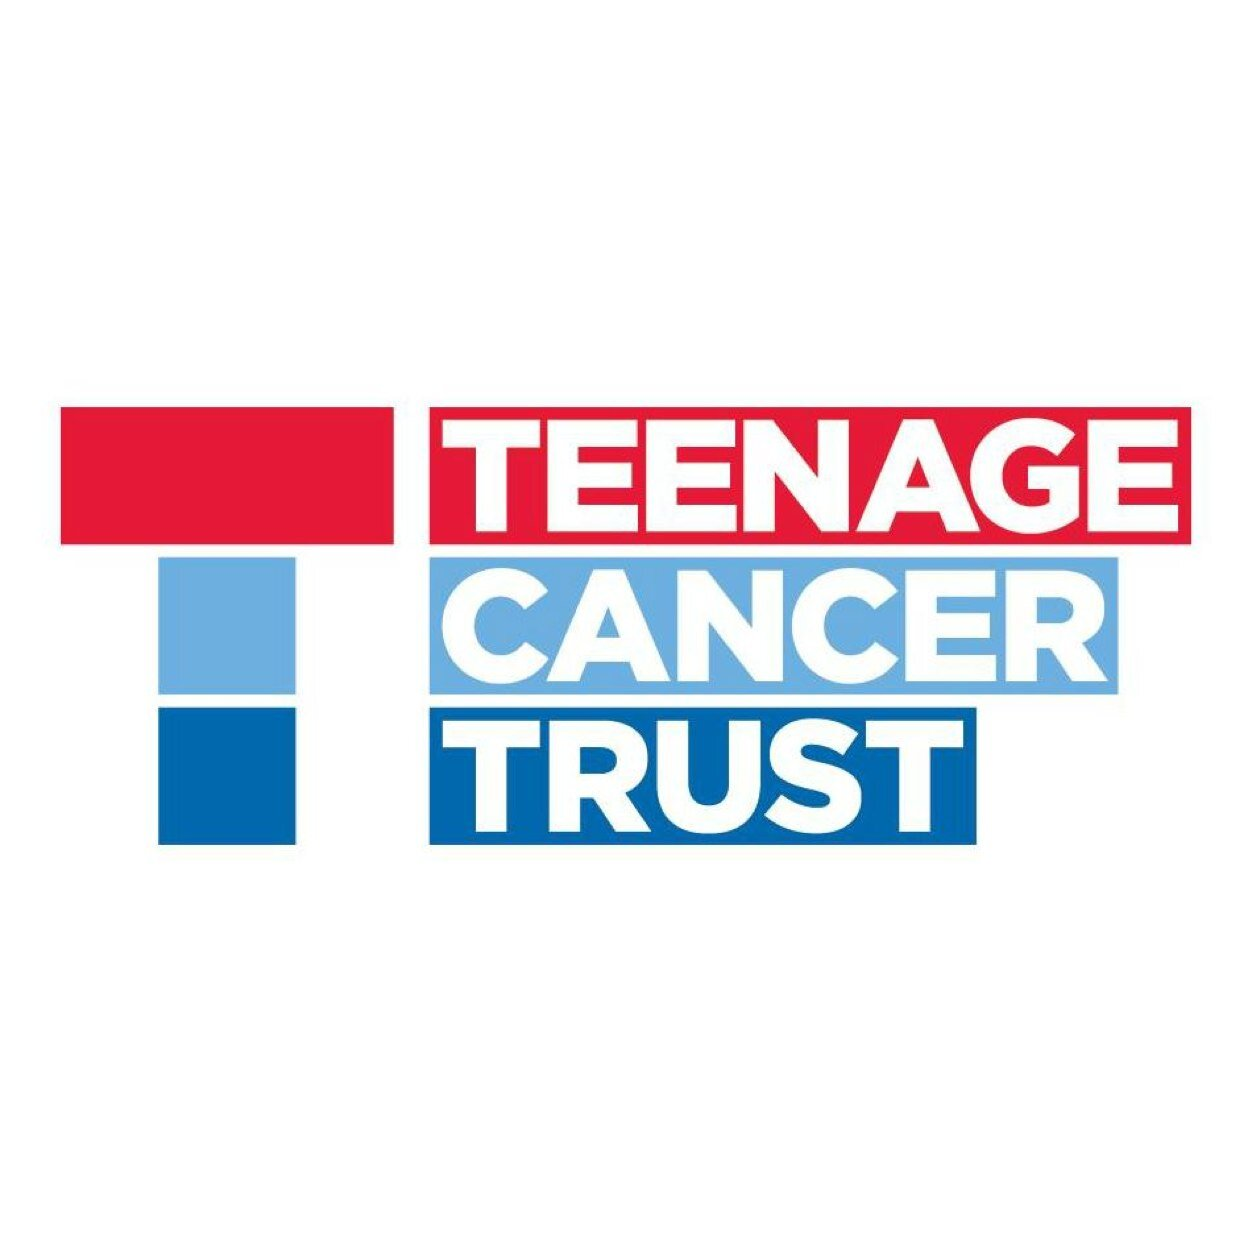 Teenage Cancer Trust Image